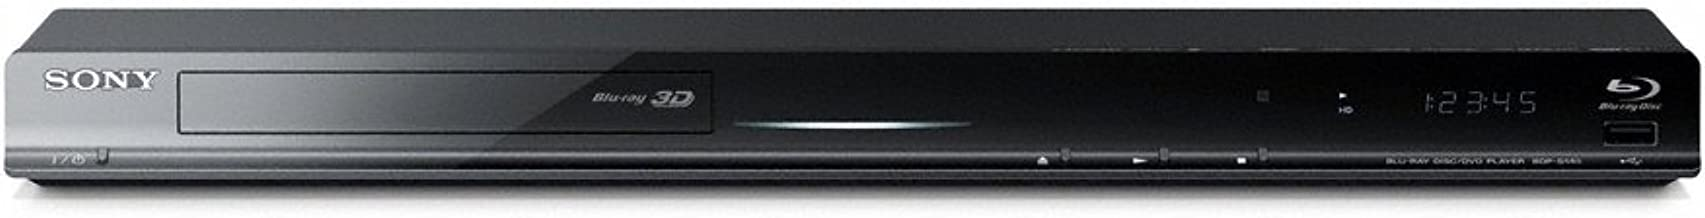 Sony BDP-S580 Blu-ray Disc Player (Black)